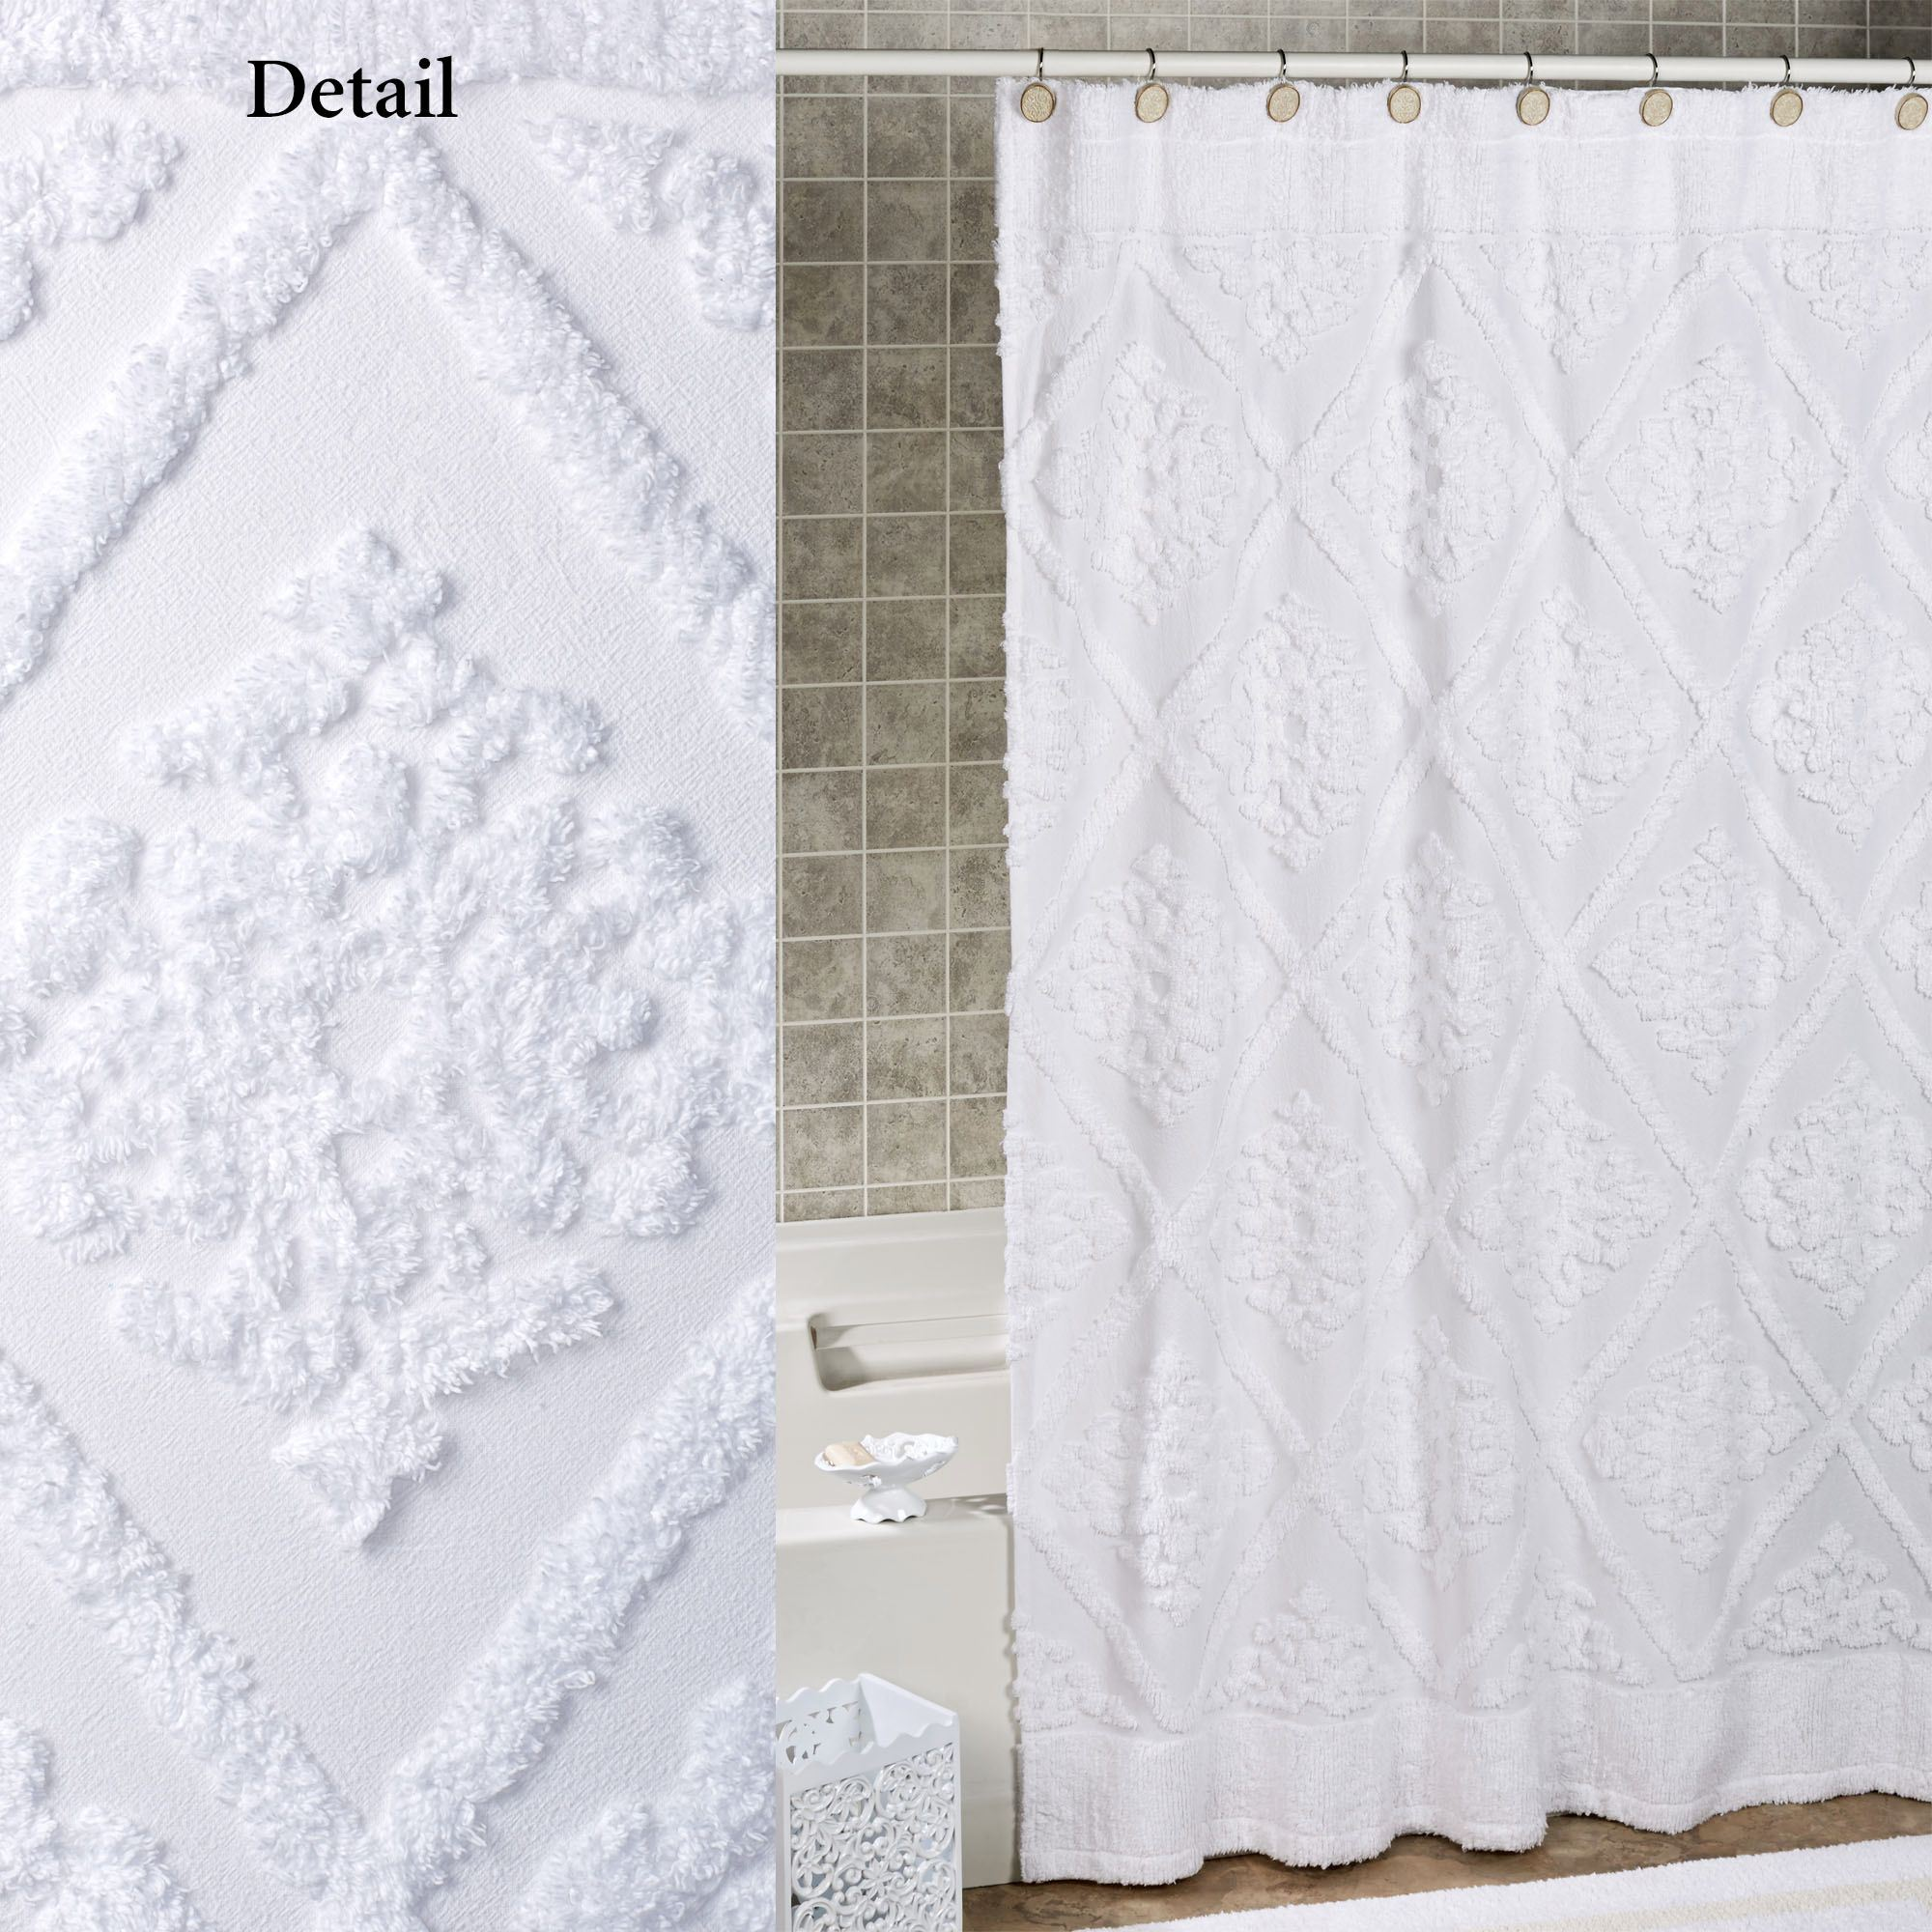 click to expand. belle white cotton chenille shower curtain